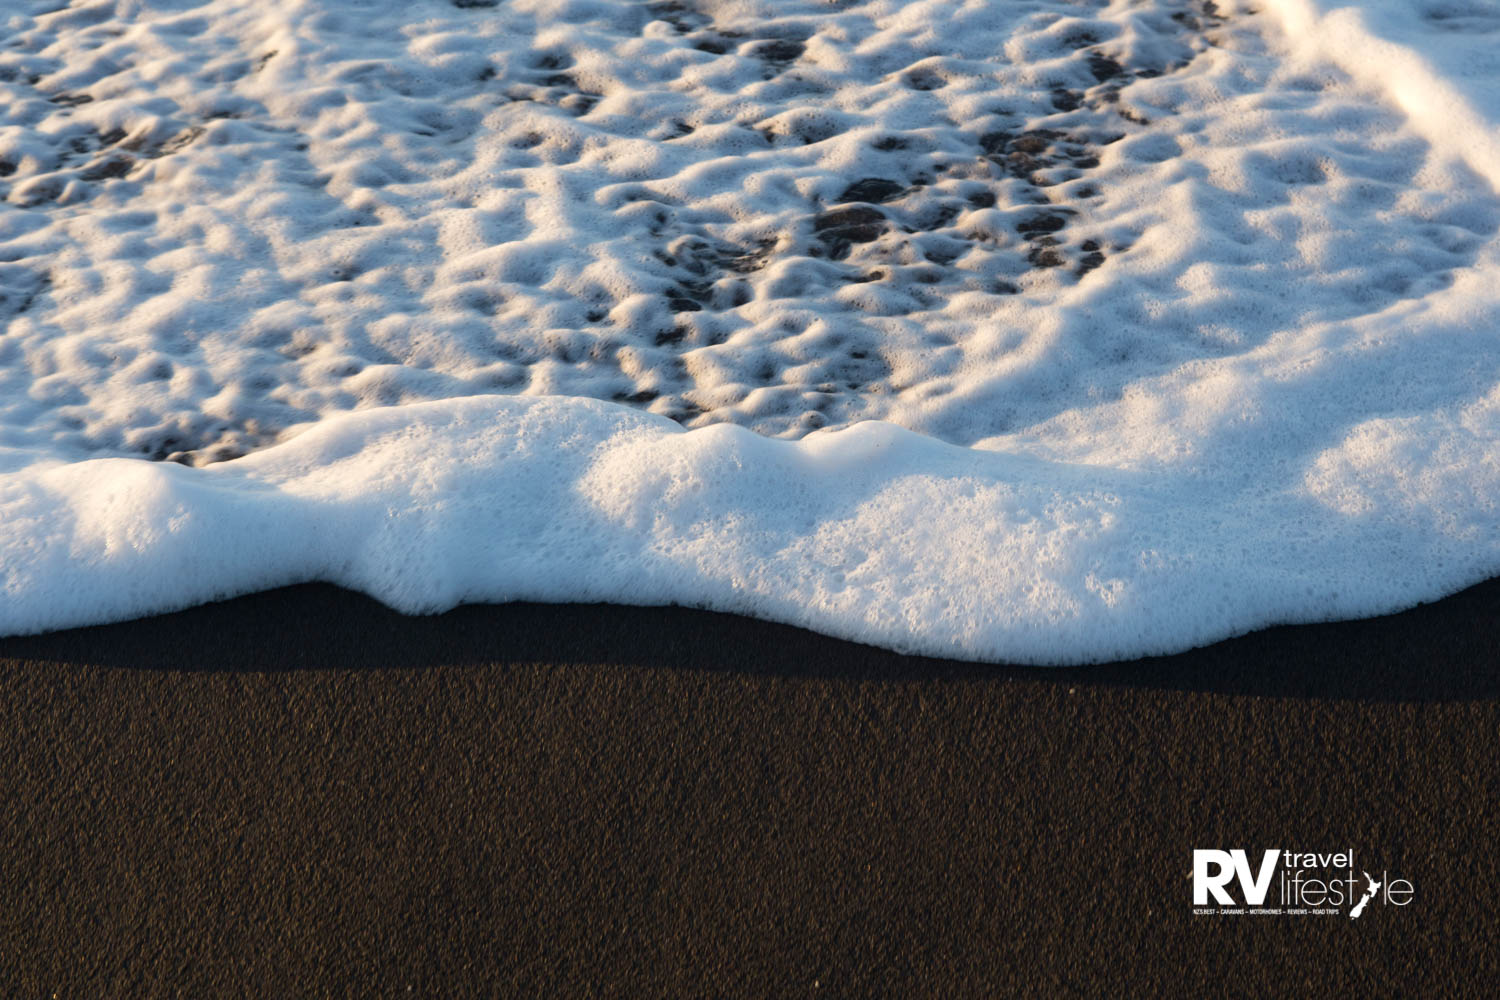 Black-sand beaches are derived from volcanic rock